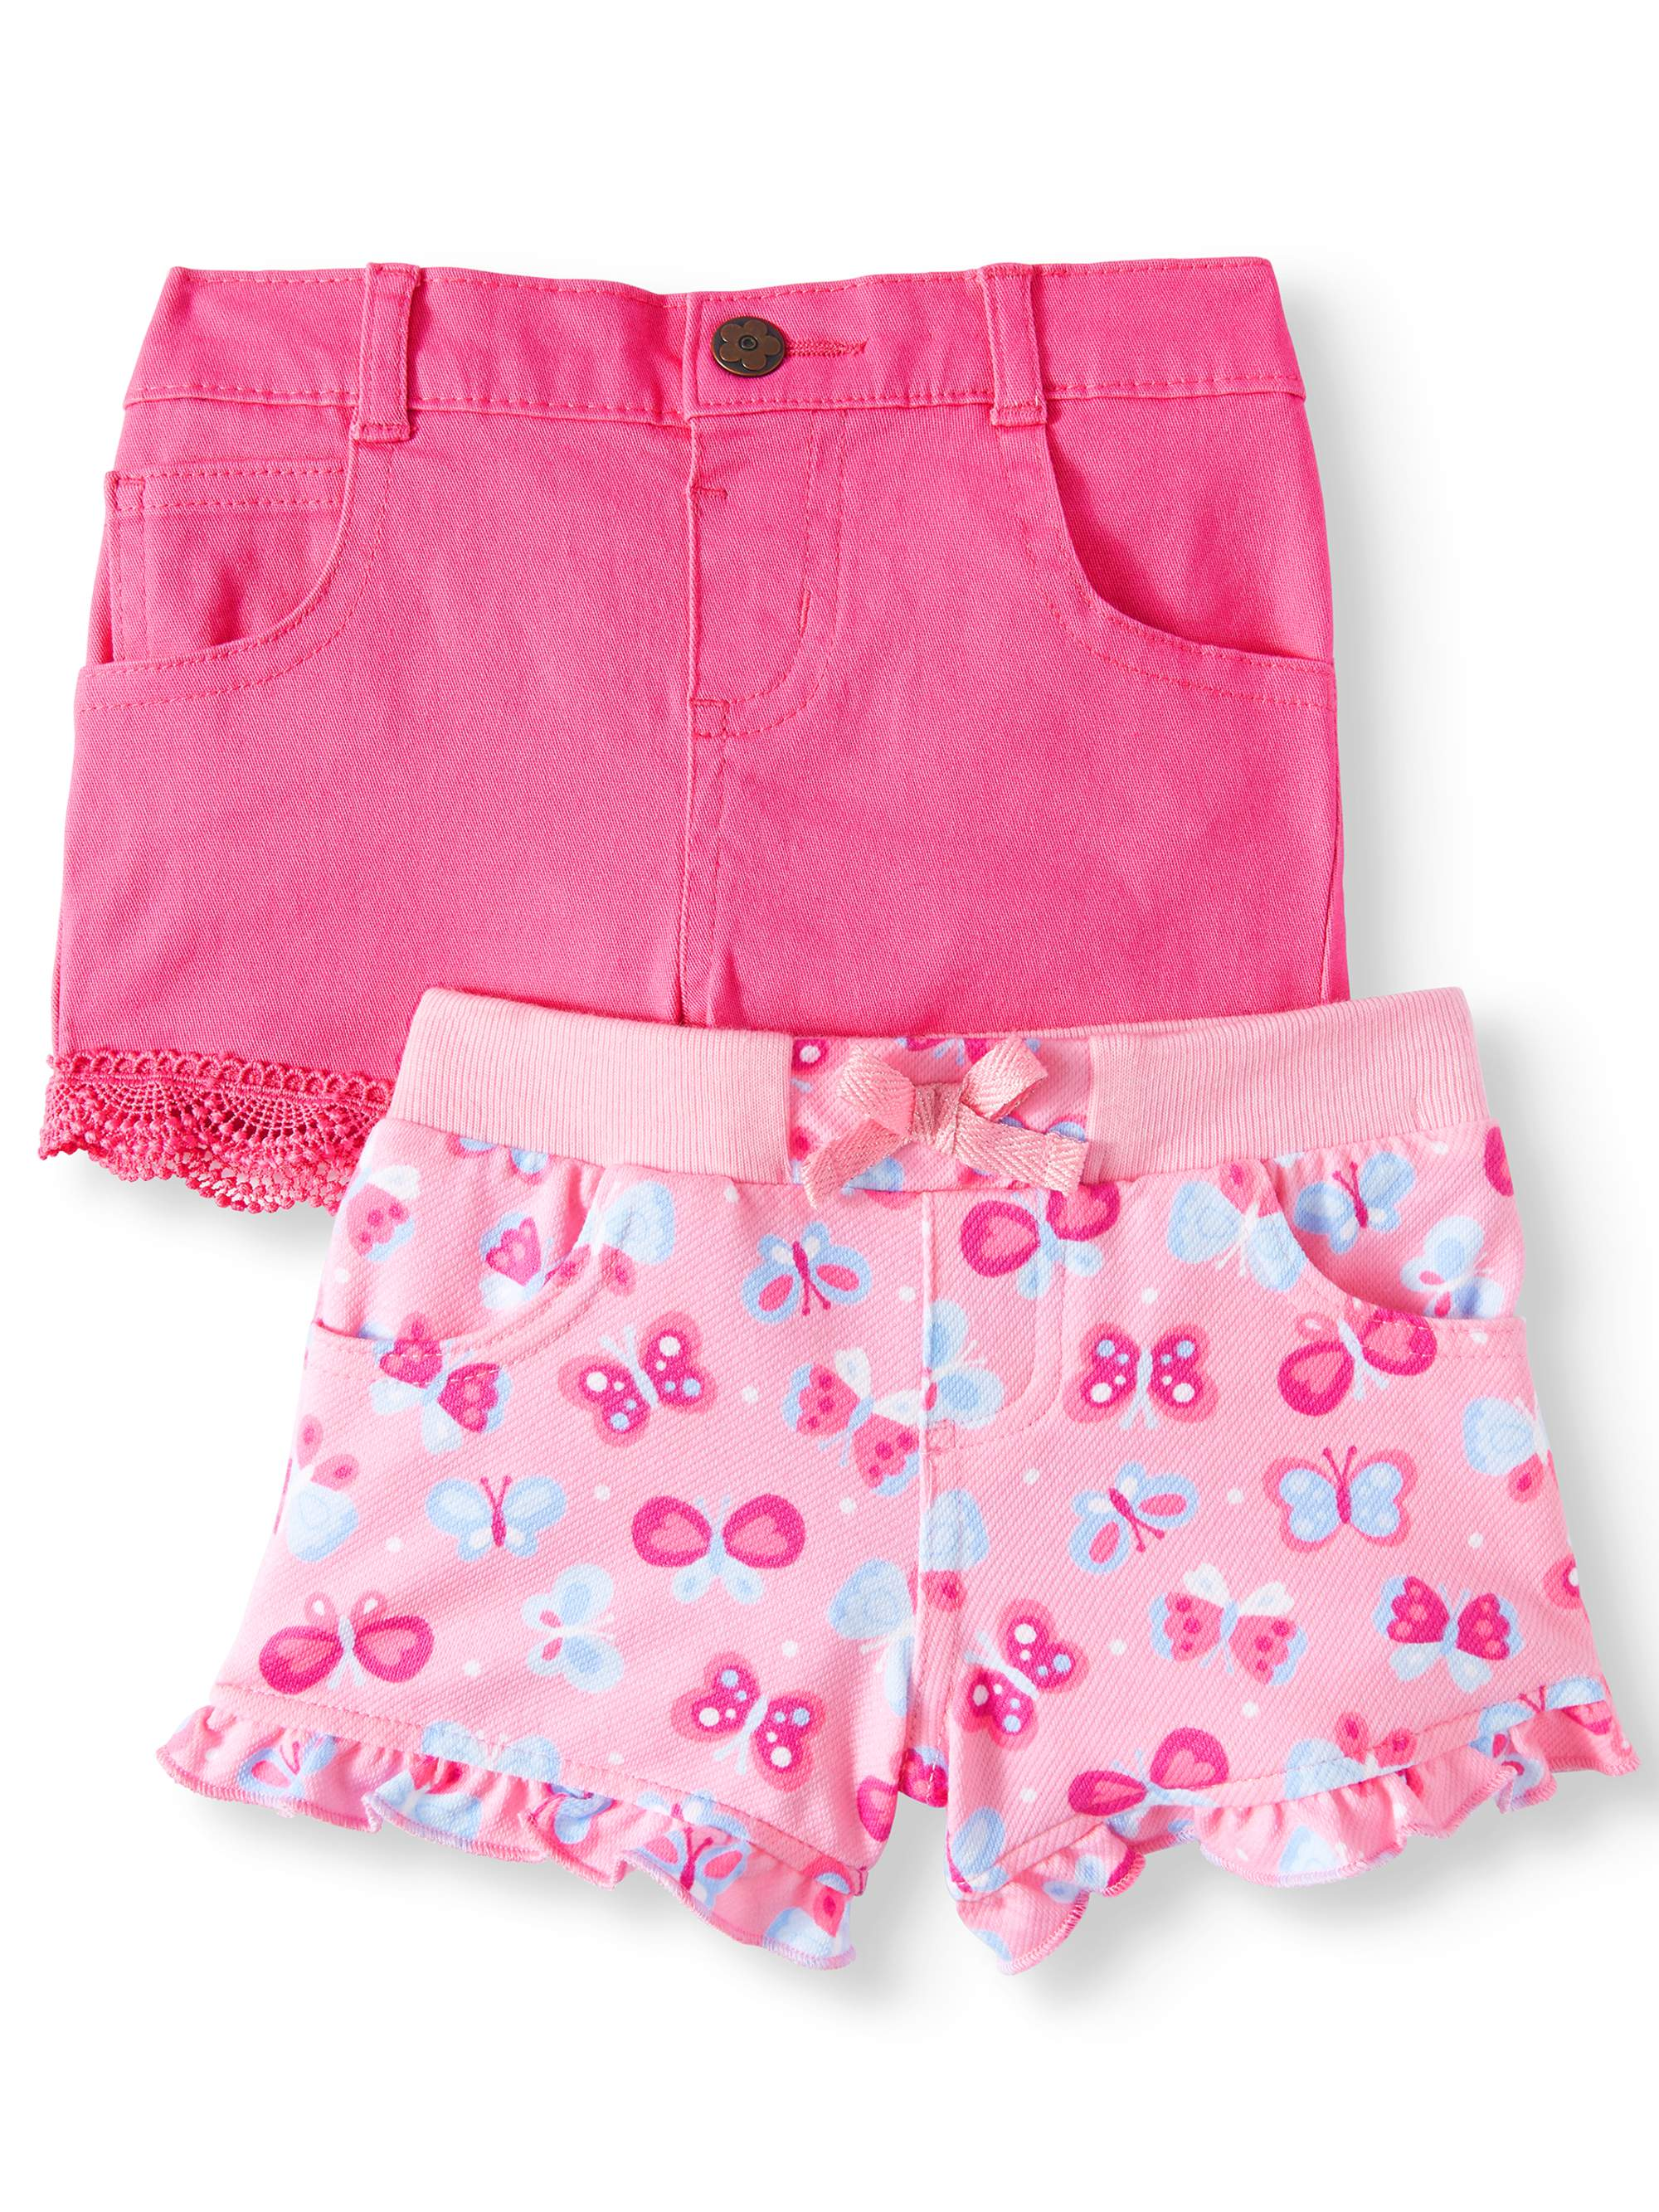 Garanimals Baby Girl Print Knit Denim and Twill or Denim Shorts, 2-Piece Multi-Pack